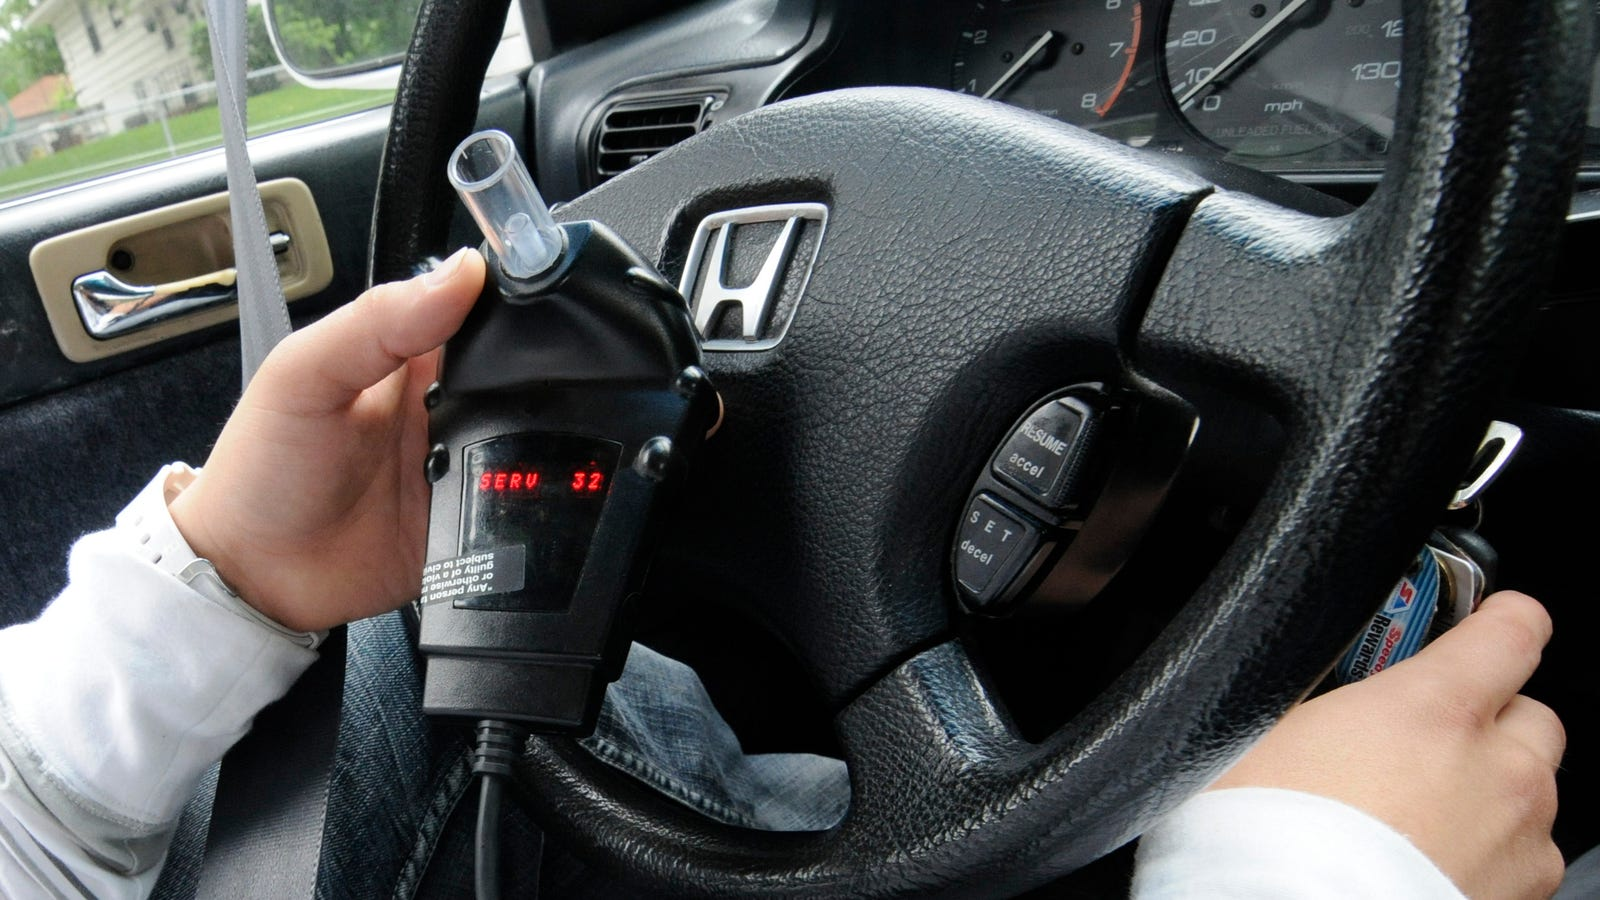 how to use an ignition interlock